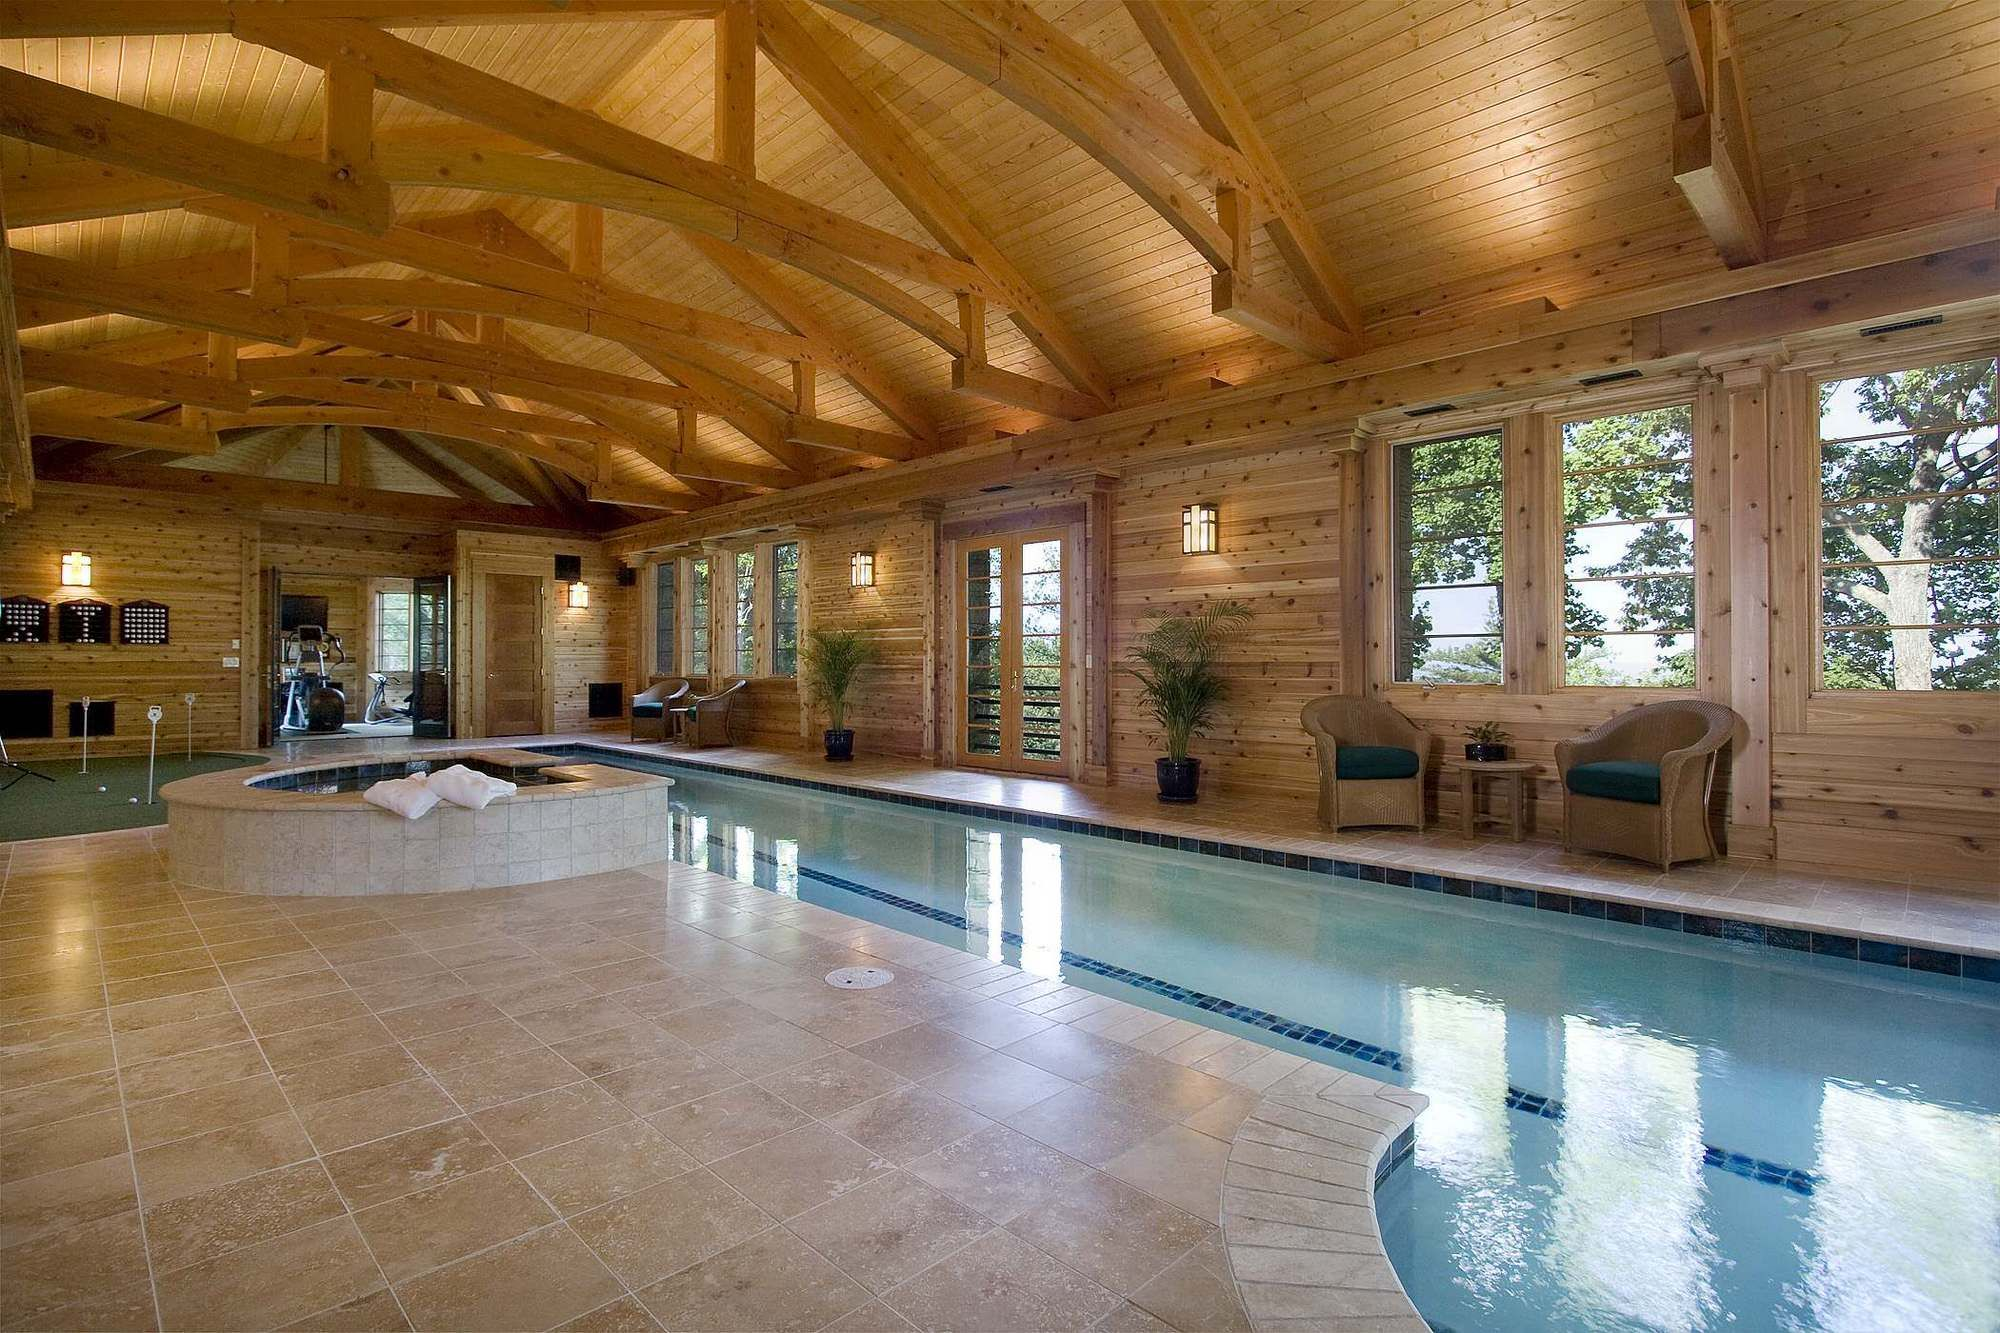 Wood ceilings marker construction - See All Photos In Project Marker Pool House Contractor Bluestone Construction